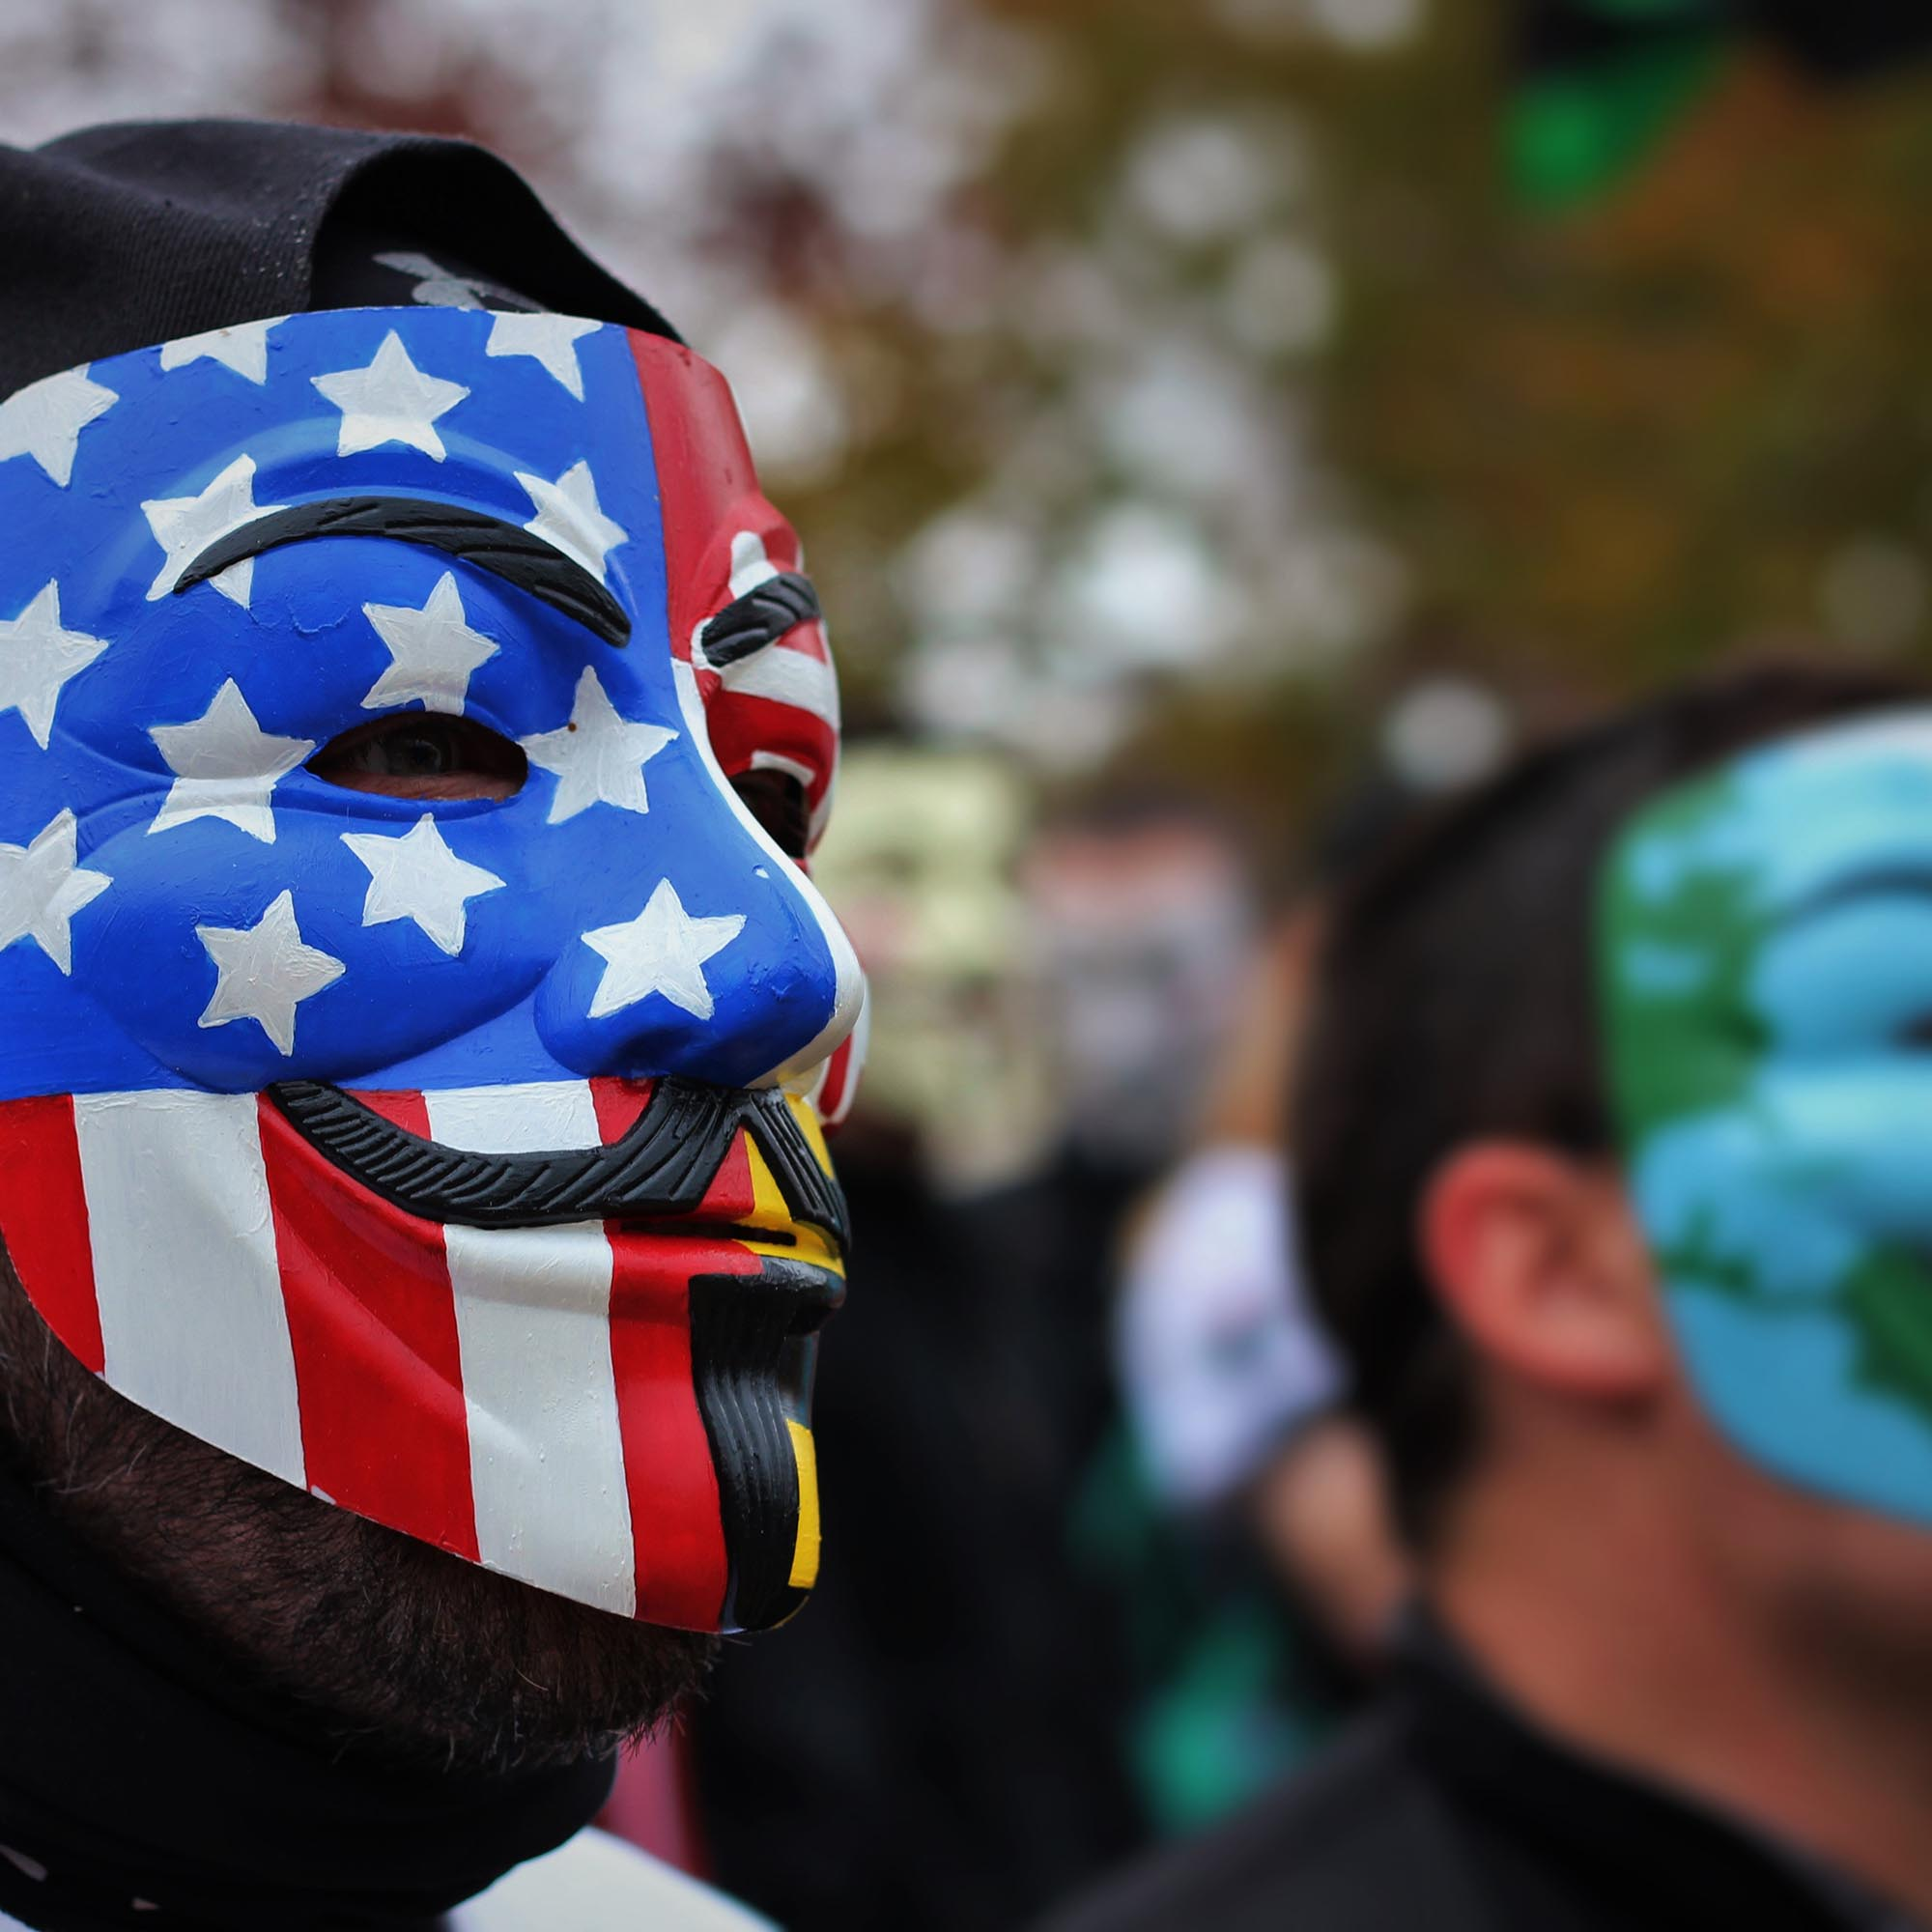 Protesters in multi-coloured Guy Fawkes masks